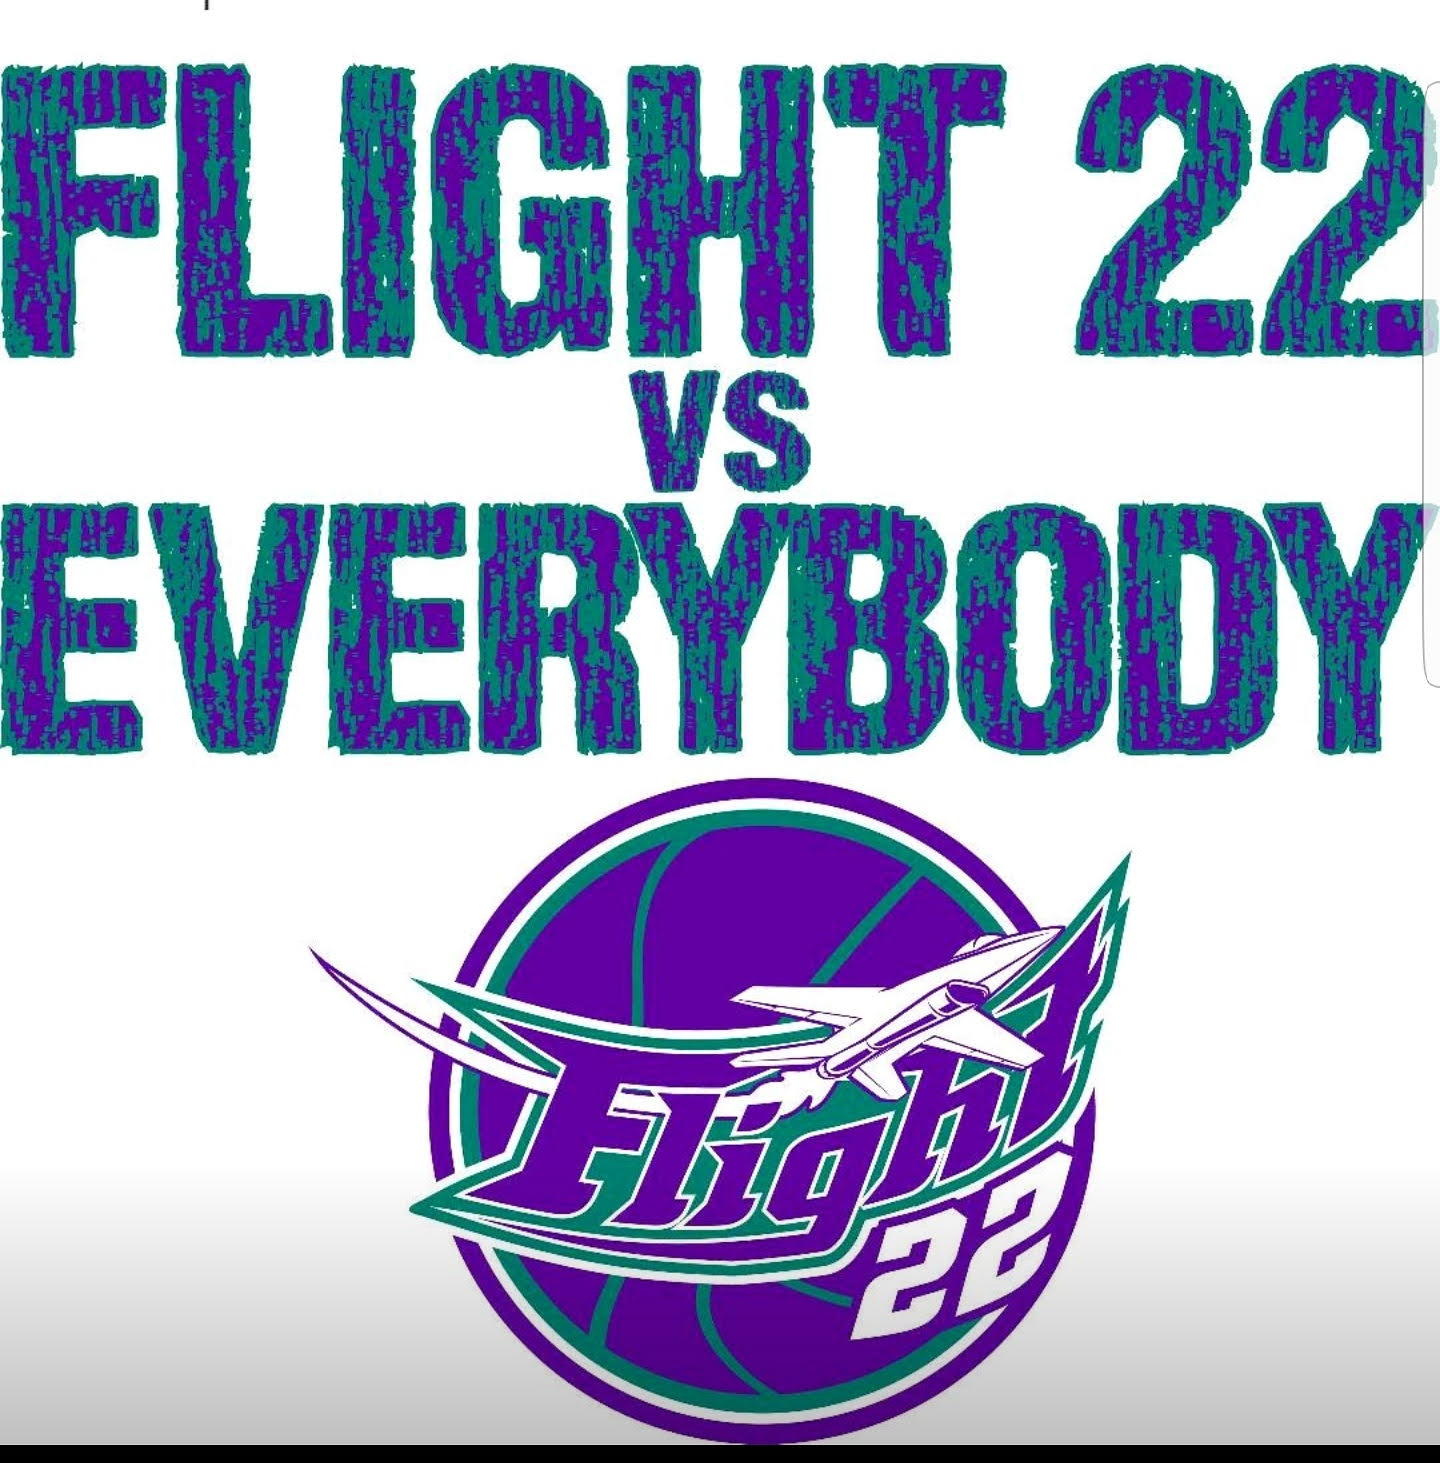 FlightVsWorld